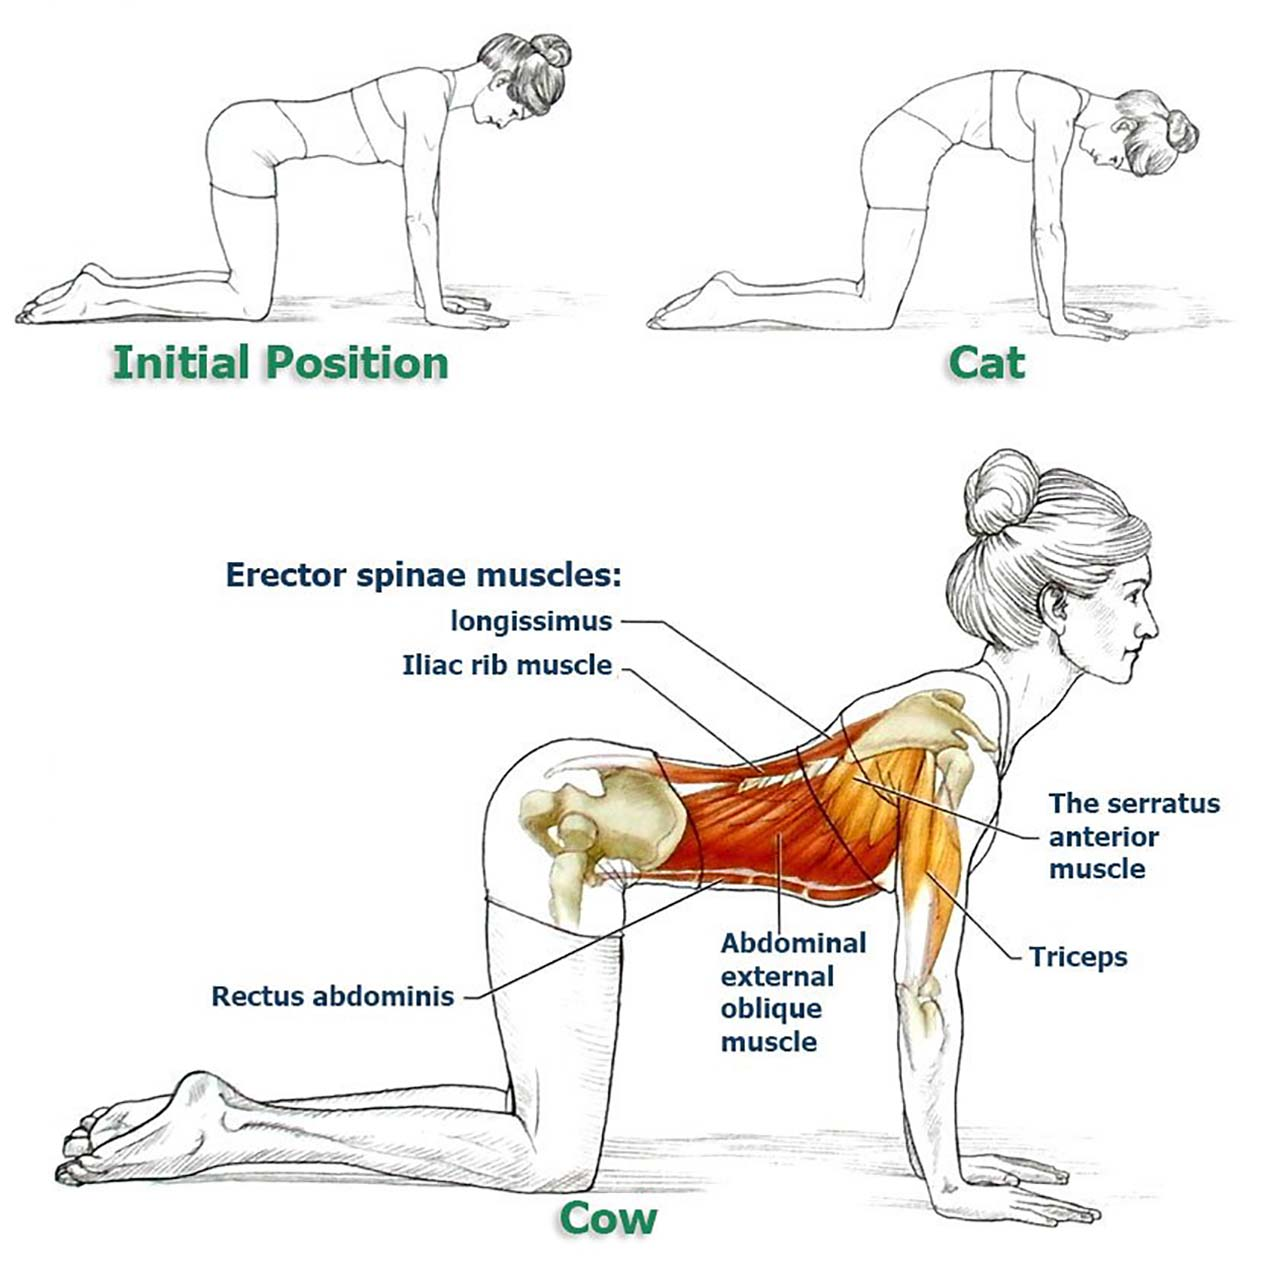 Cat Cow Pose Muscles Used